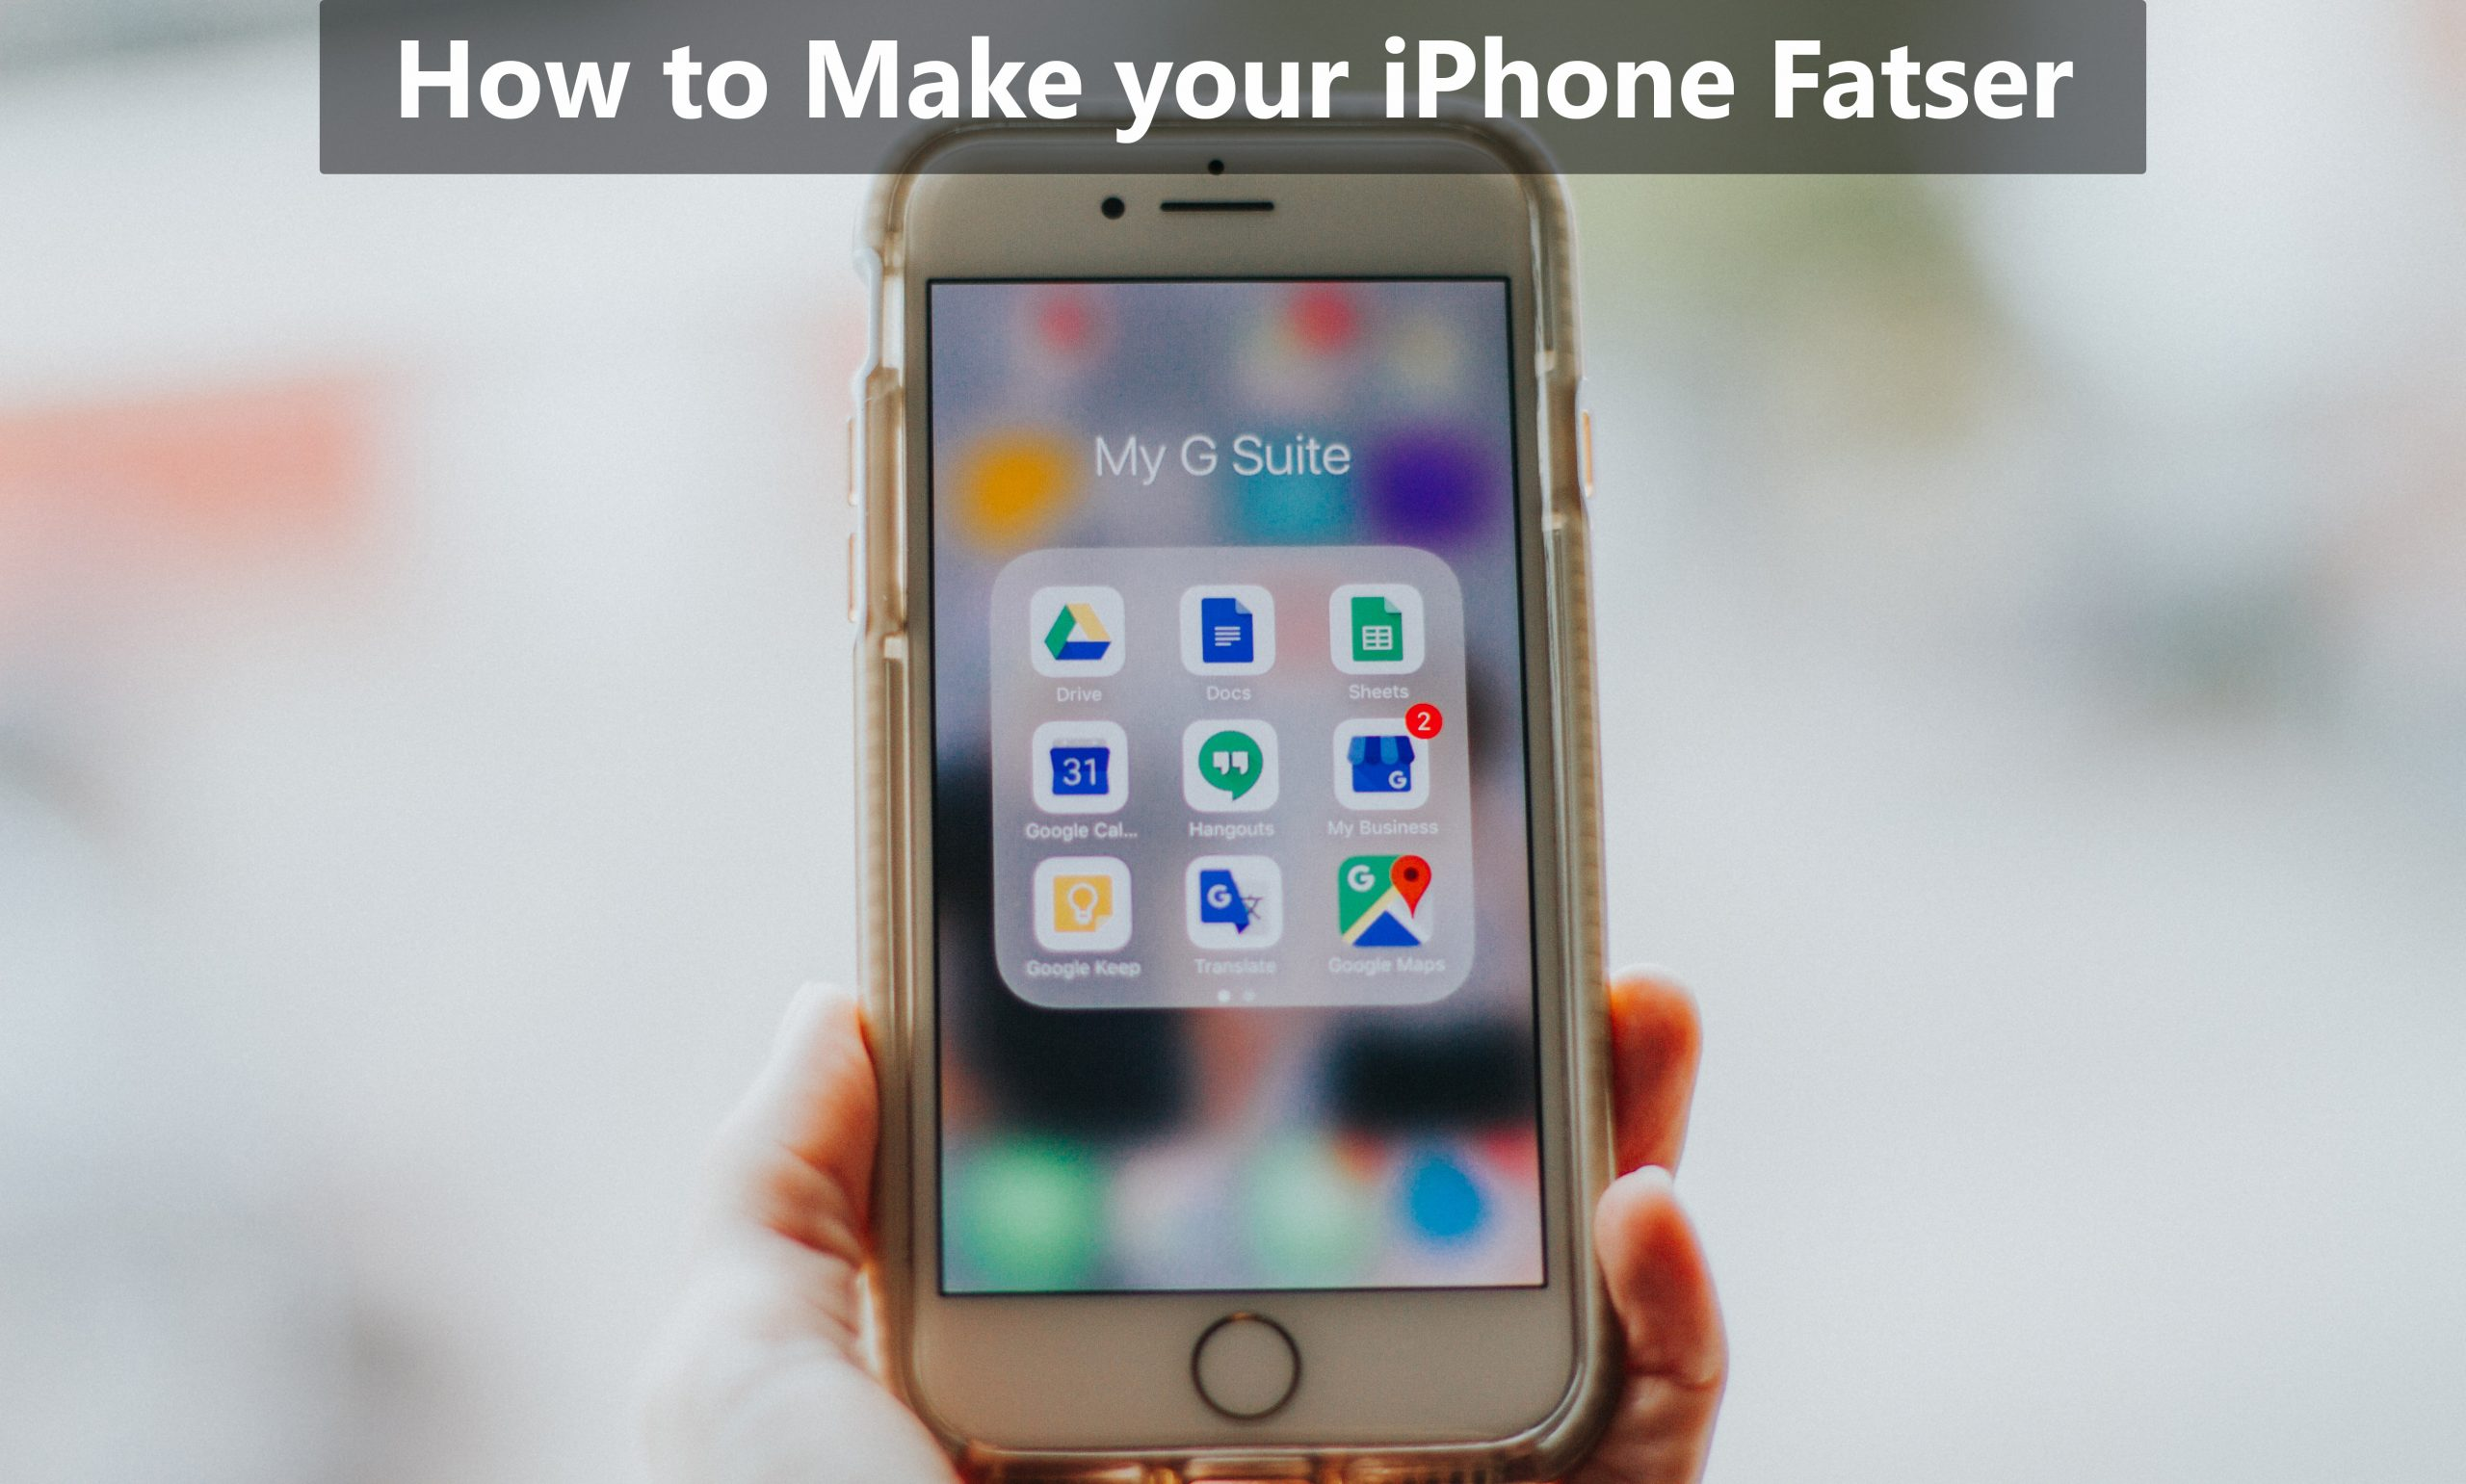 How to make your iPhone faster